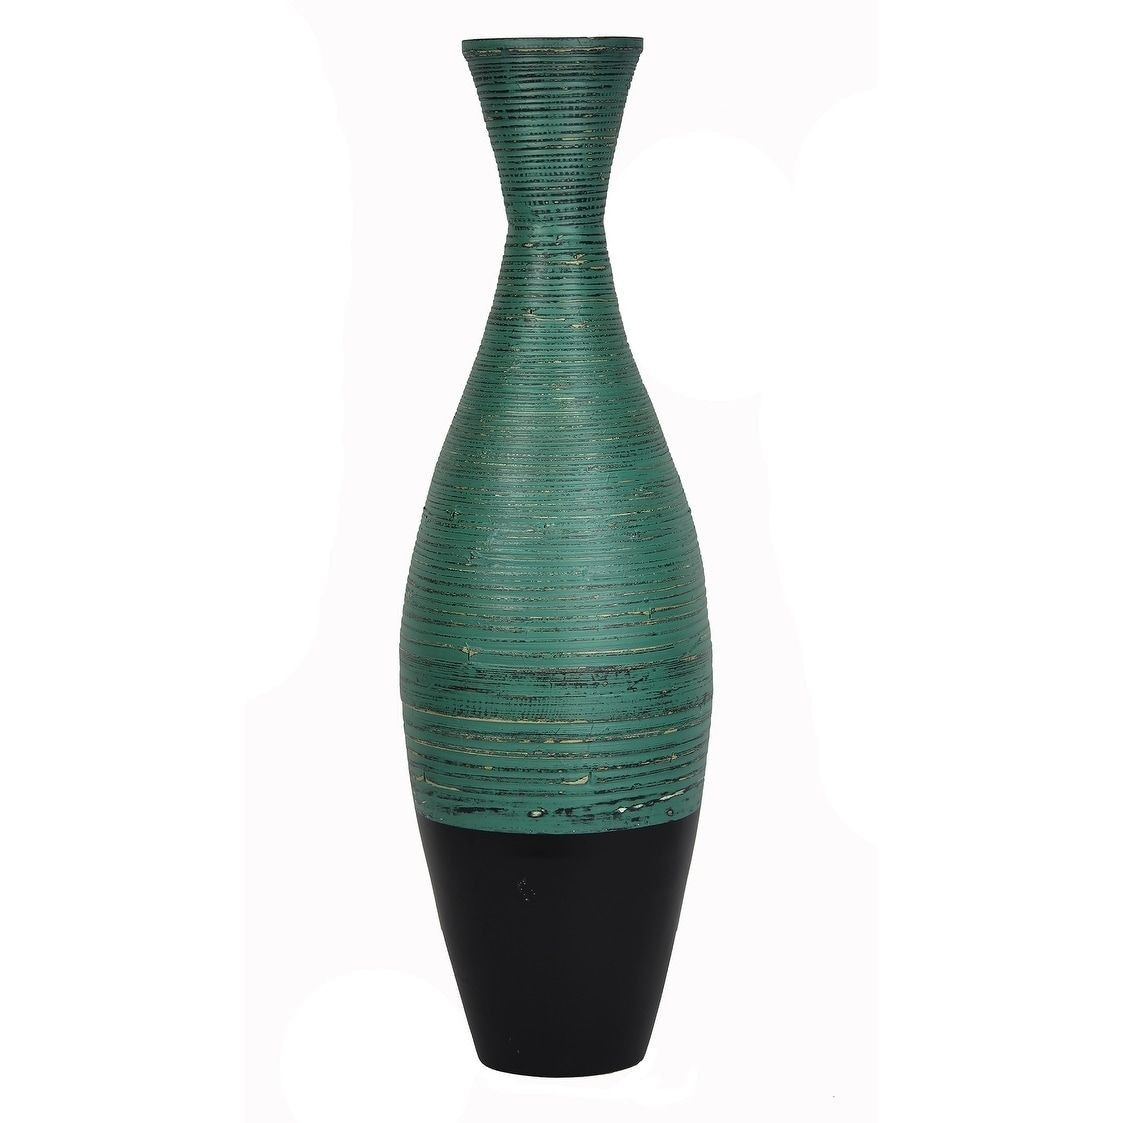 36 inch vase of nola 36 spun bamboo floor vase products pinterest outlet with regard to nola 36 spun bamboo floor vase